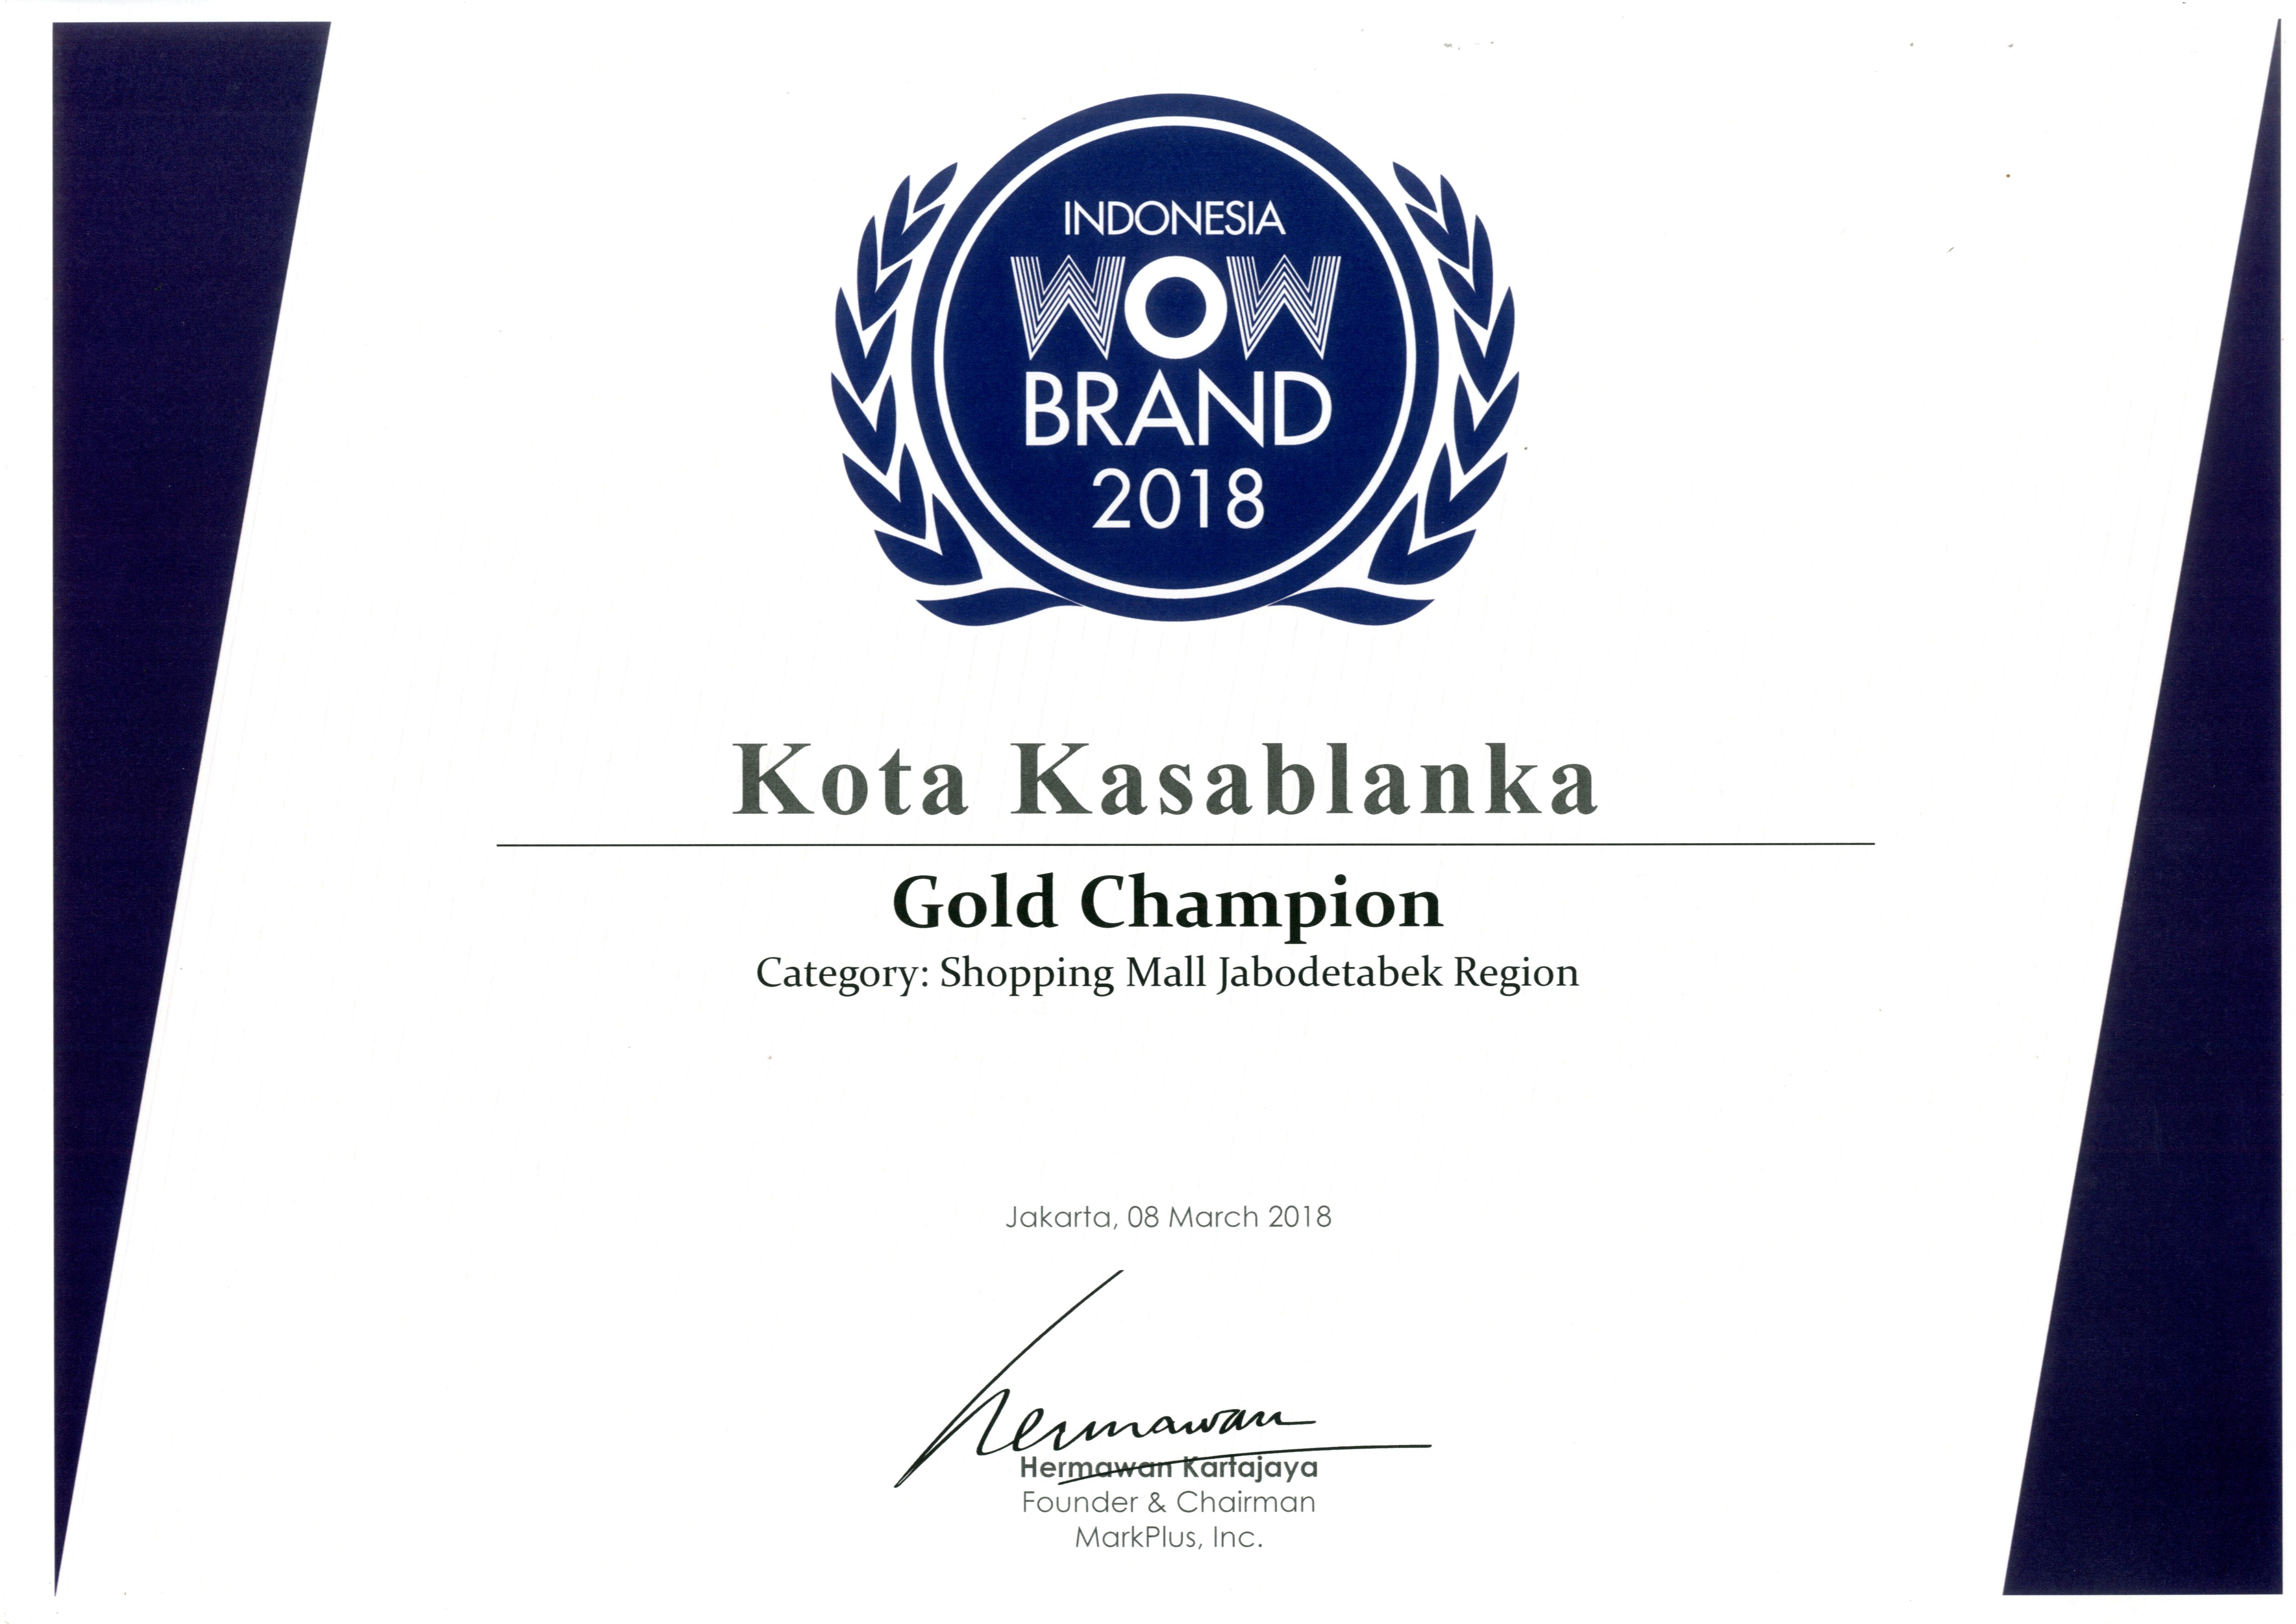 /public/files/image-companny/award-slider/3.IndonesiaWOWBrand2018-GoldChampionKota-kasablanka-Feb2018.jpg